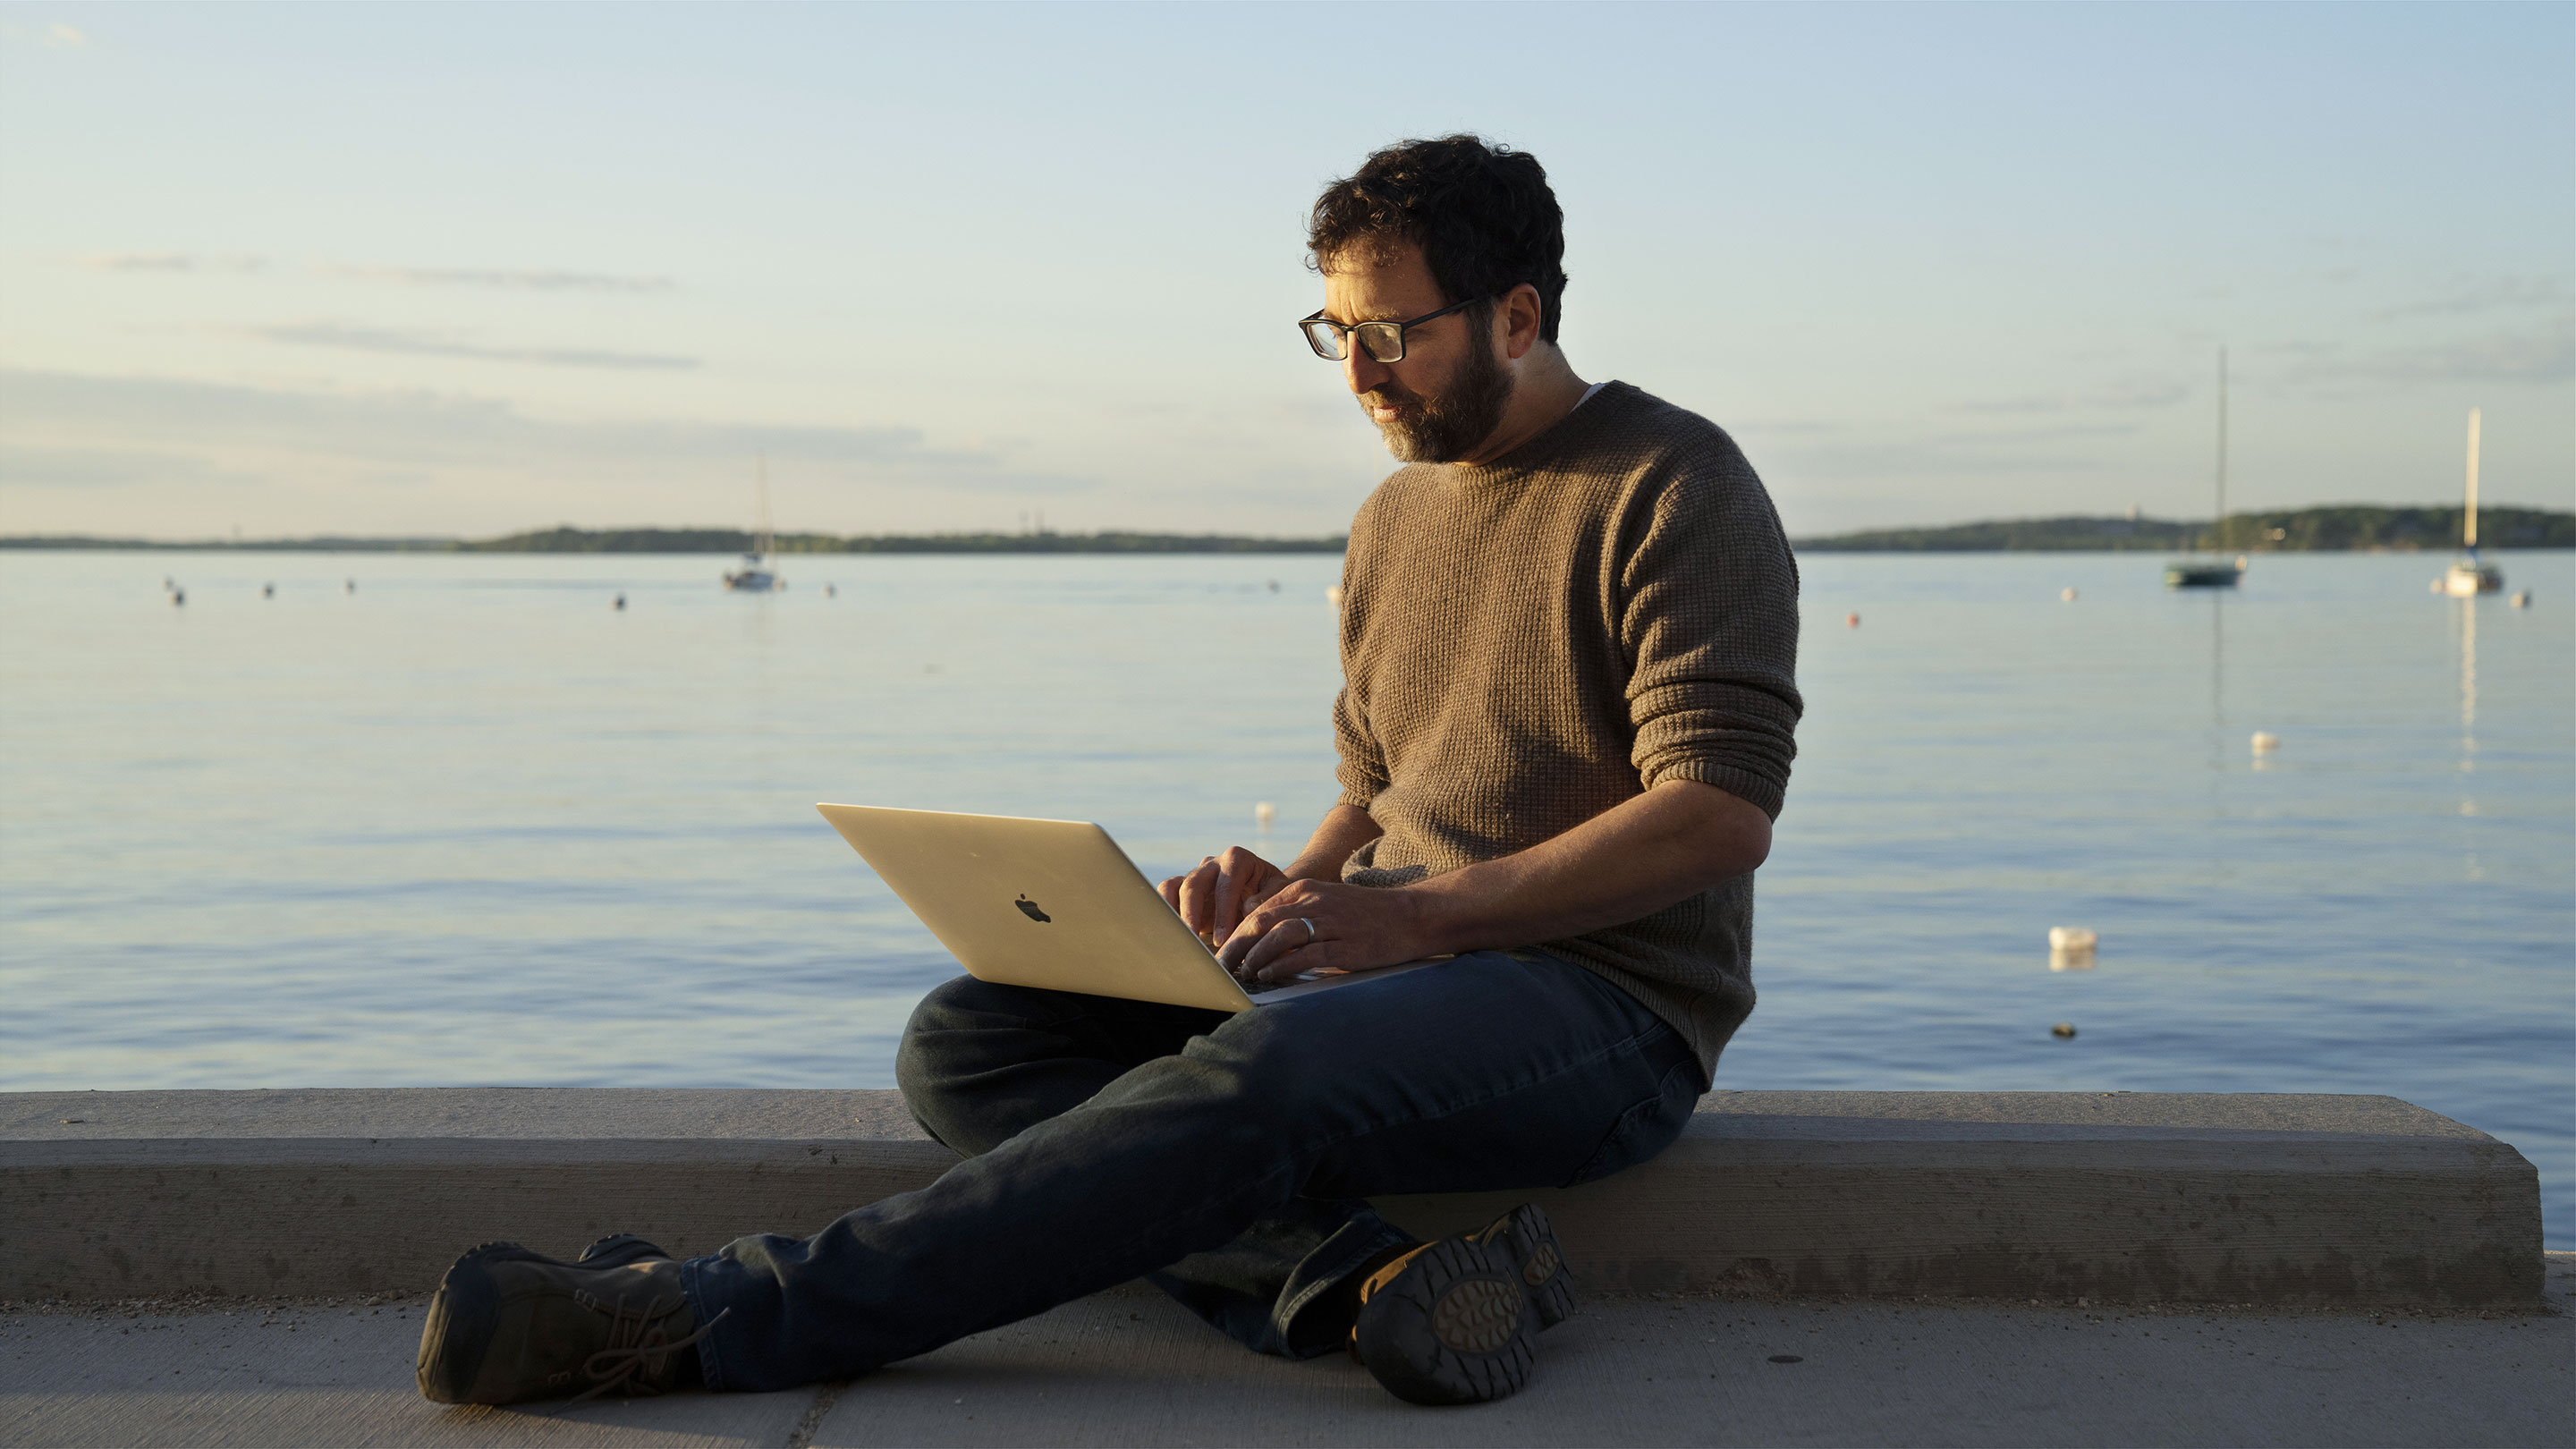 Color photo of Jordan Ellenberg sitting with a laptop by a lake at sunset